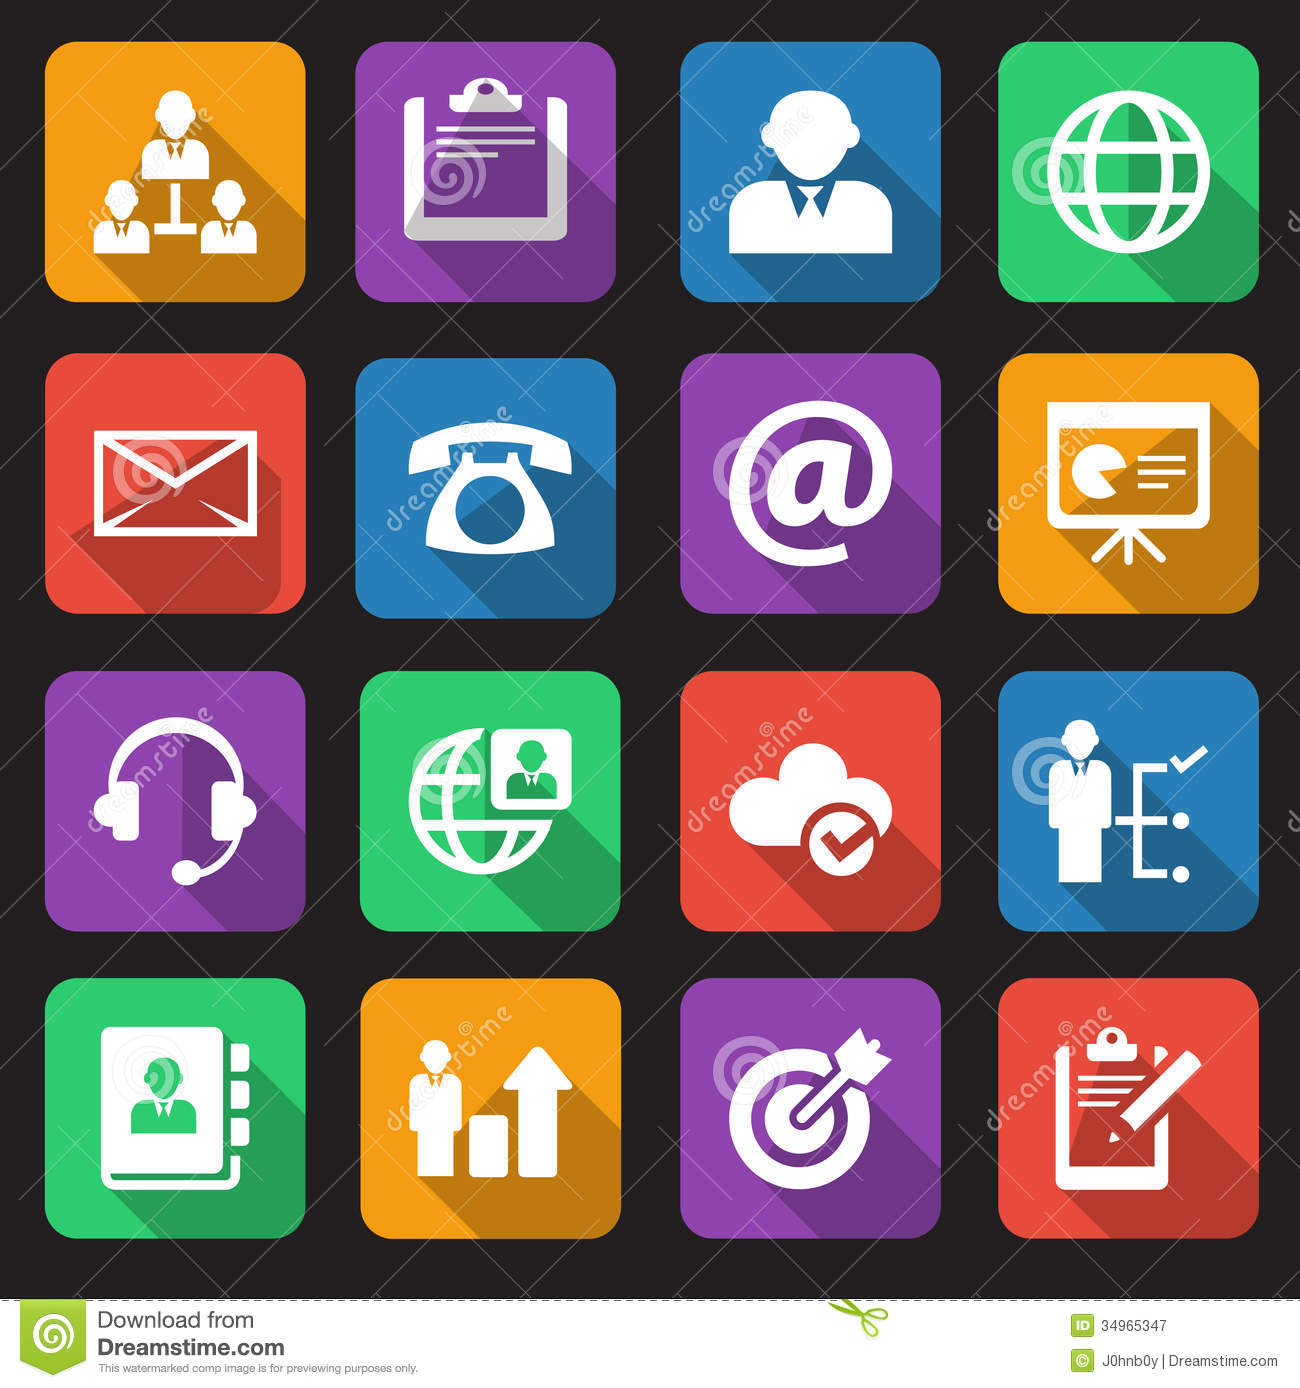 15 Free Business Icon Pack Images